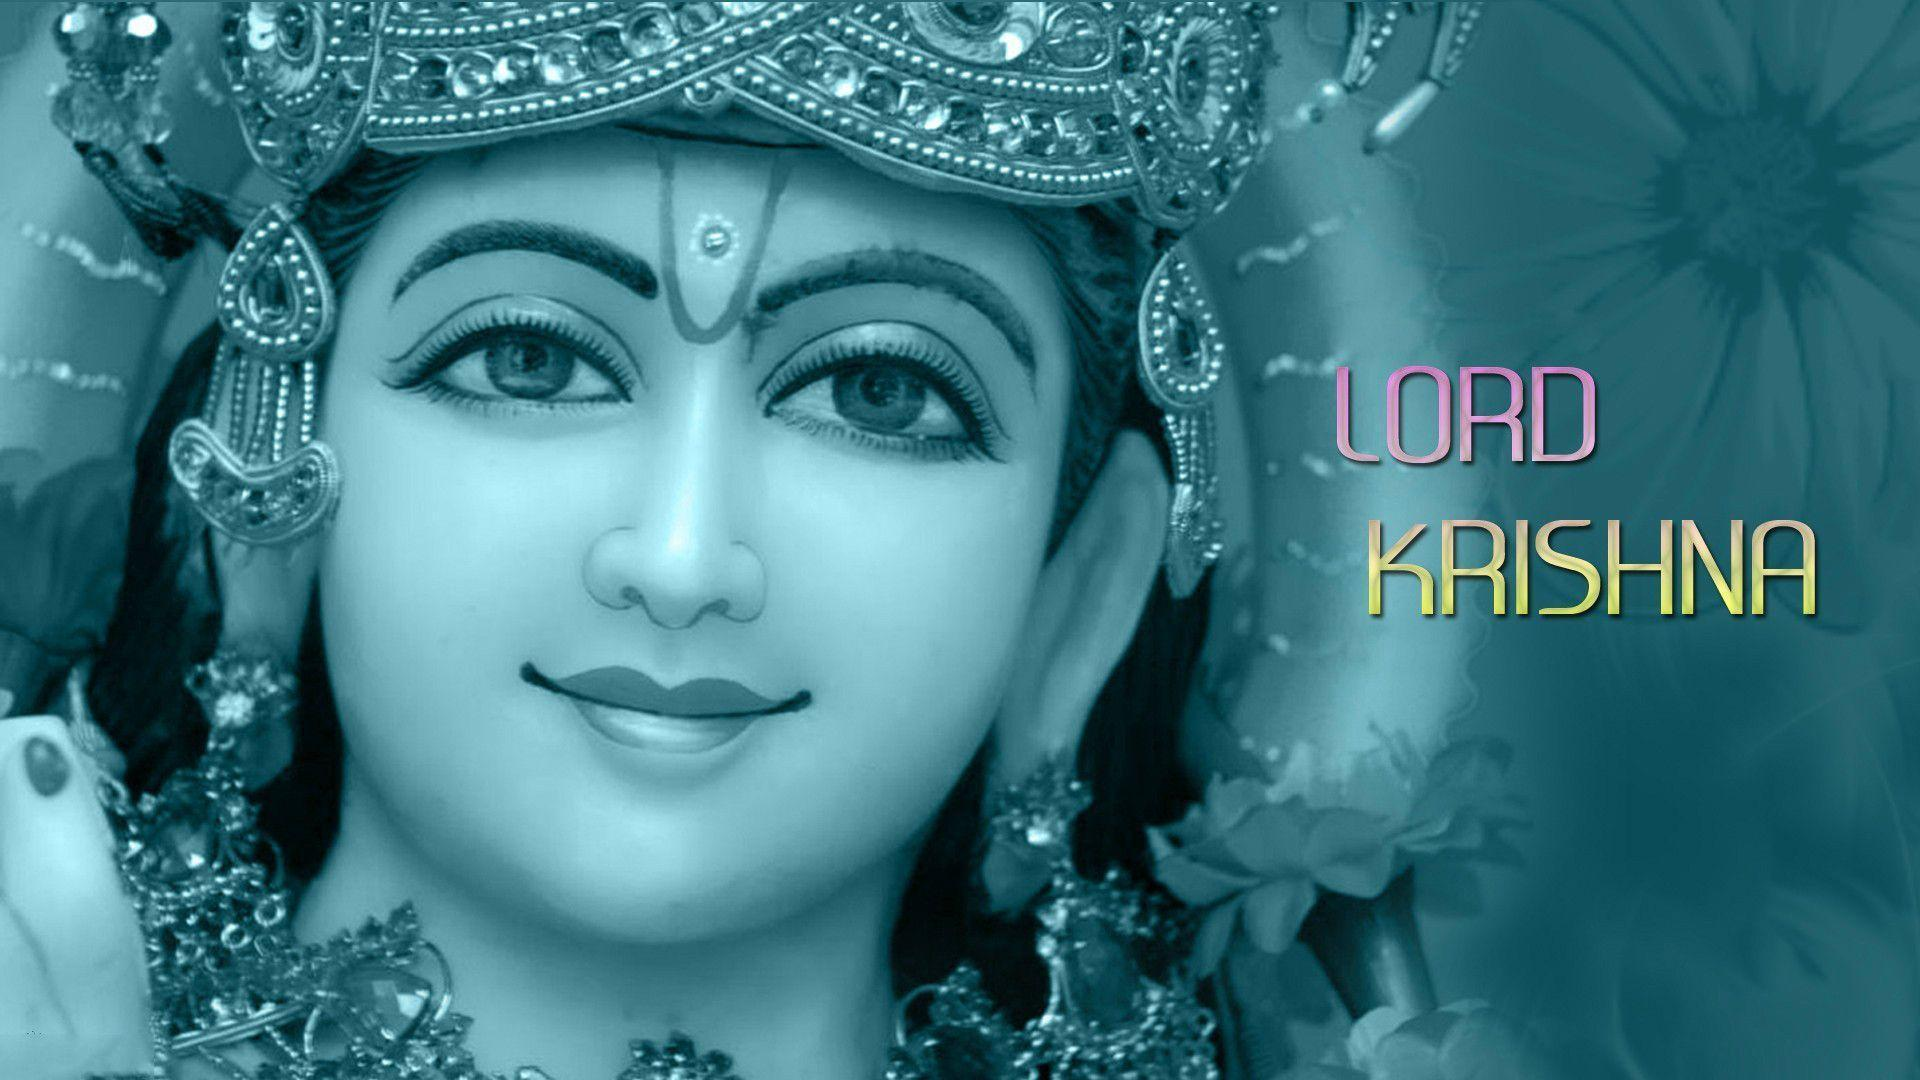 Hd wallpaper lord krishna - Lord Krishna Gods Hd Wallpaper Lord Krishna Wallpapers Hd Free